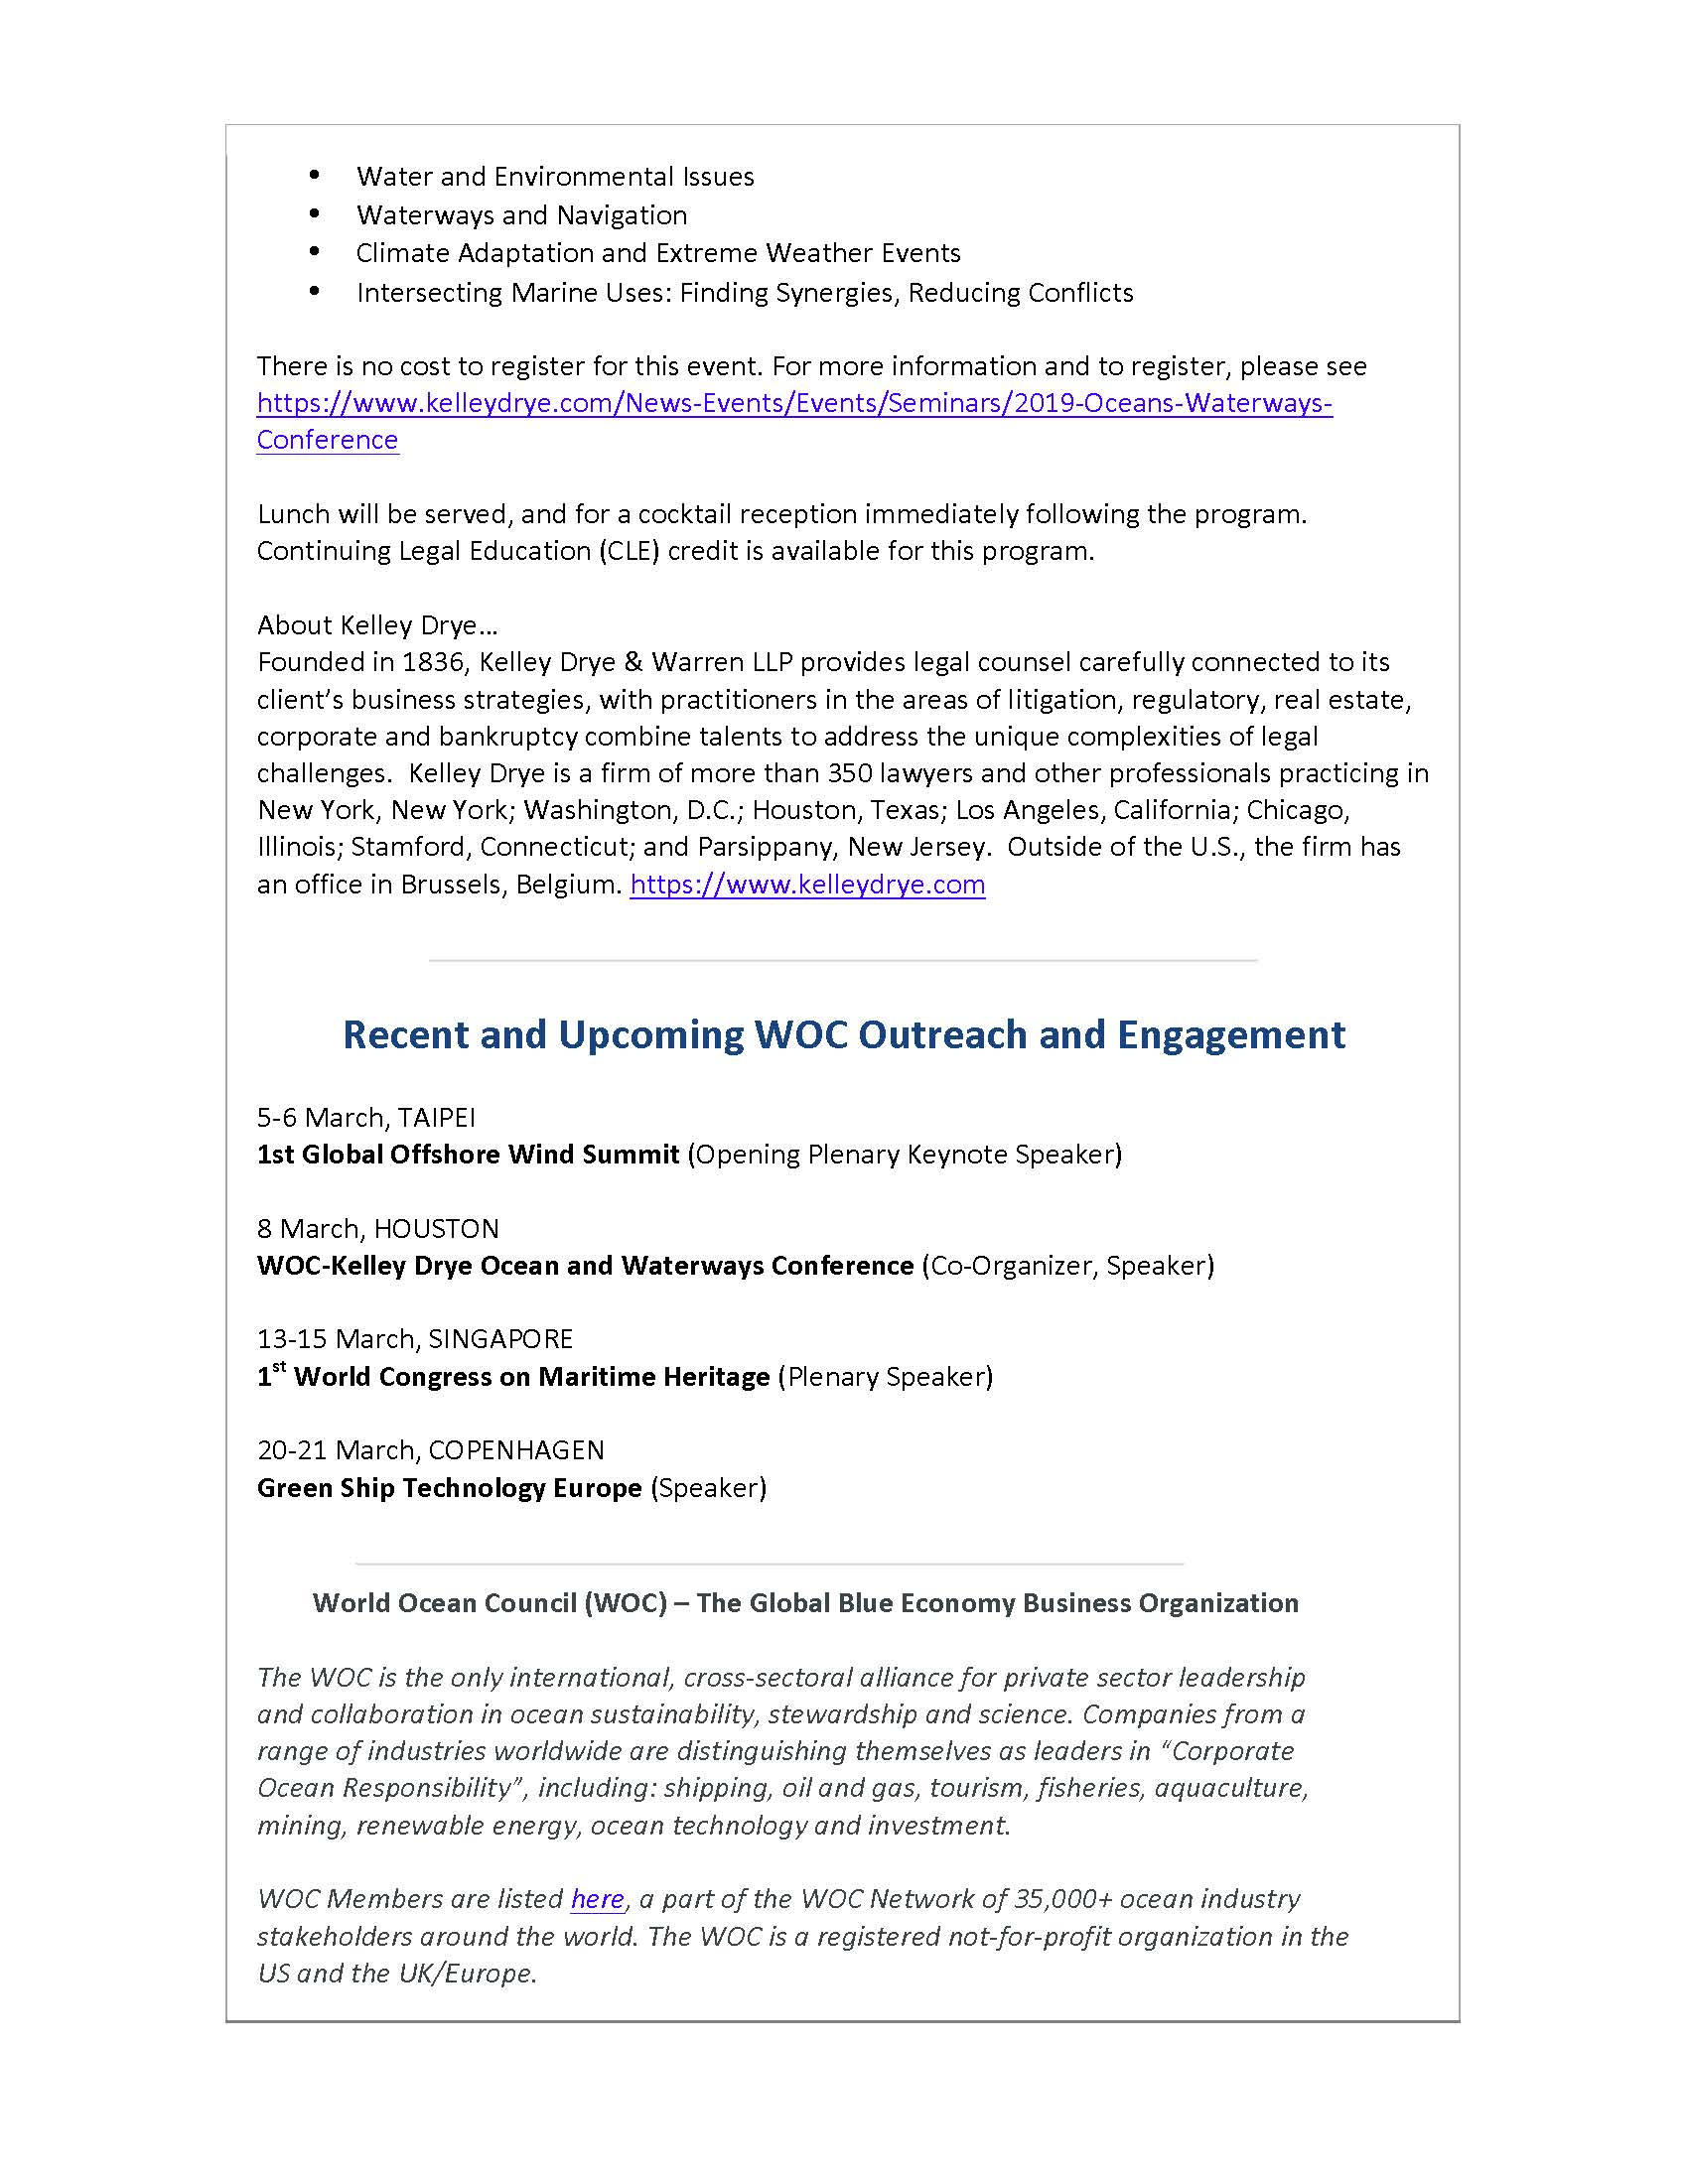 Houston Ocean and Waterways Conference Organized by WOC and Law Firm Kelley Drye - 28 February 2019